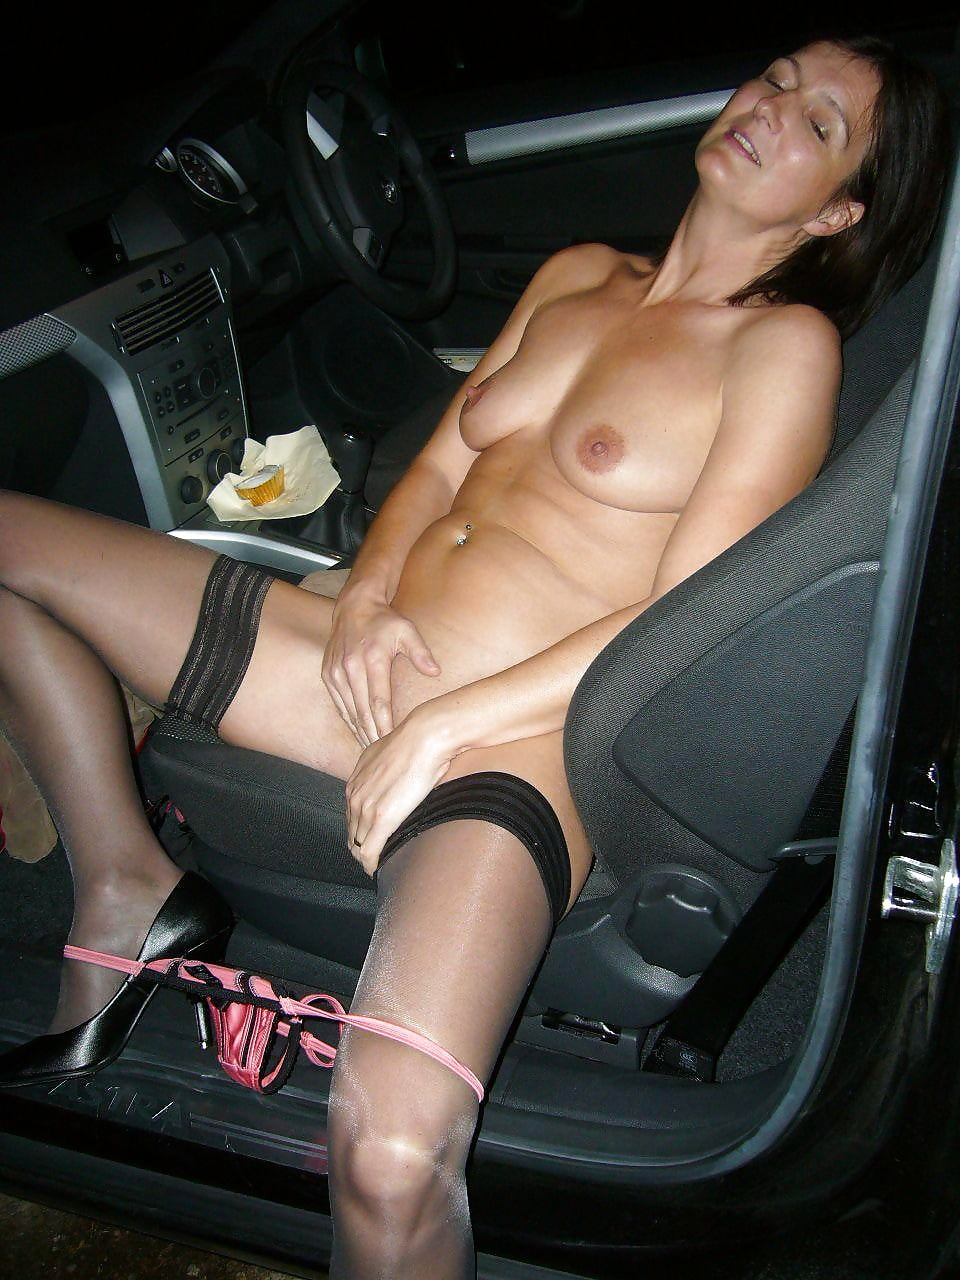 Nude in the car wifebucket